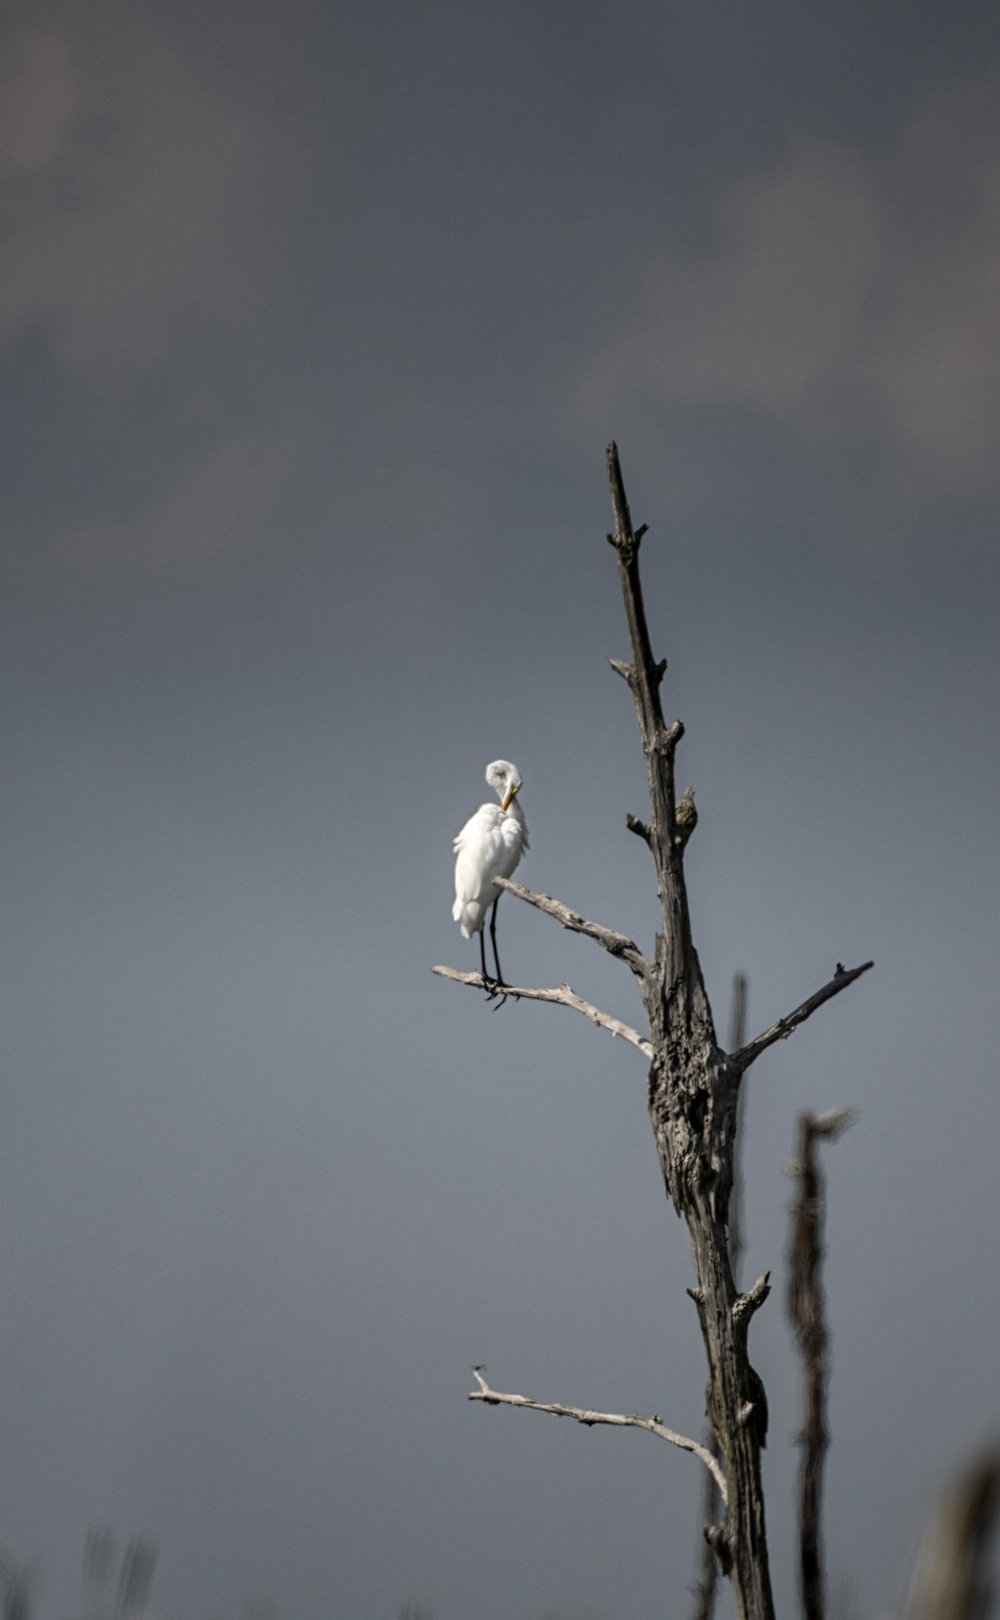 Great White Egret in tree